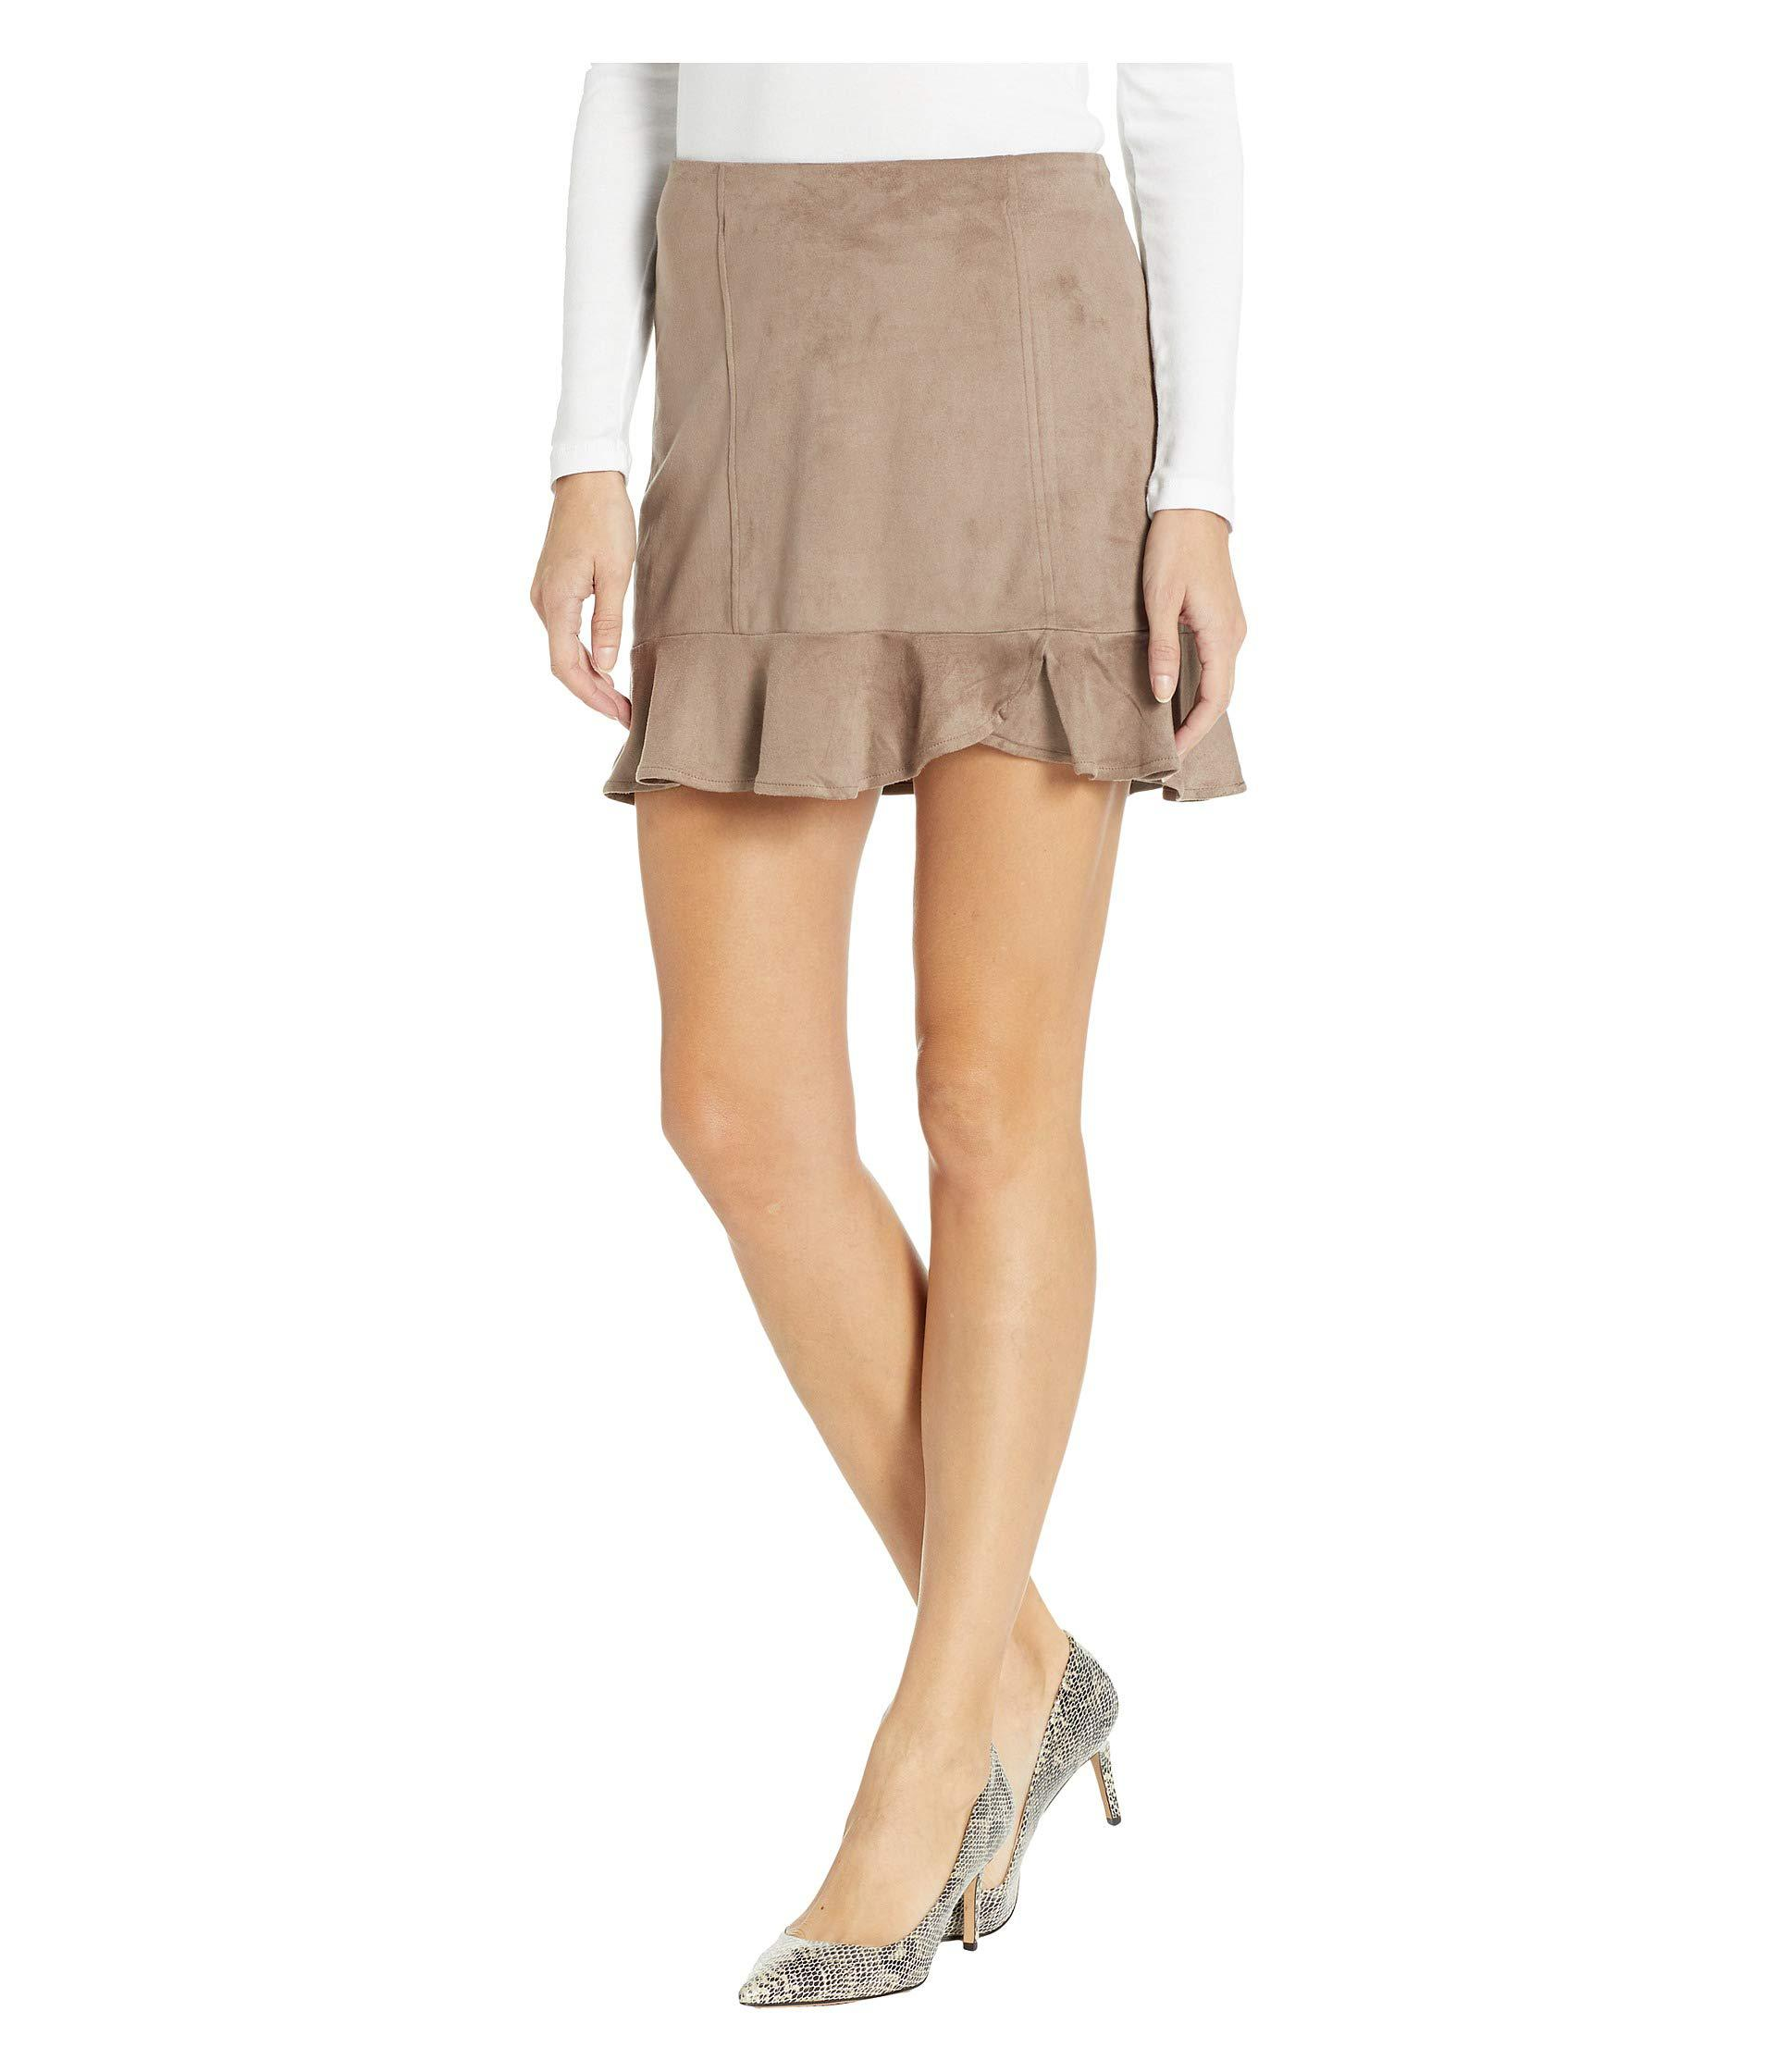 f2be54f6b8 Lyst - Jack BB Dakota Sagittarius Faux Suede Ruffle Skirt (black) Women's  Skirt in Brown